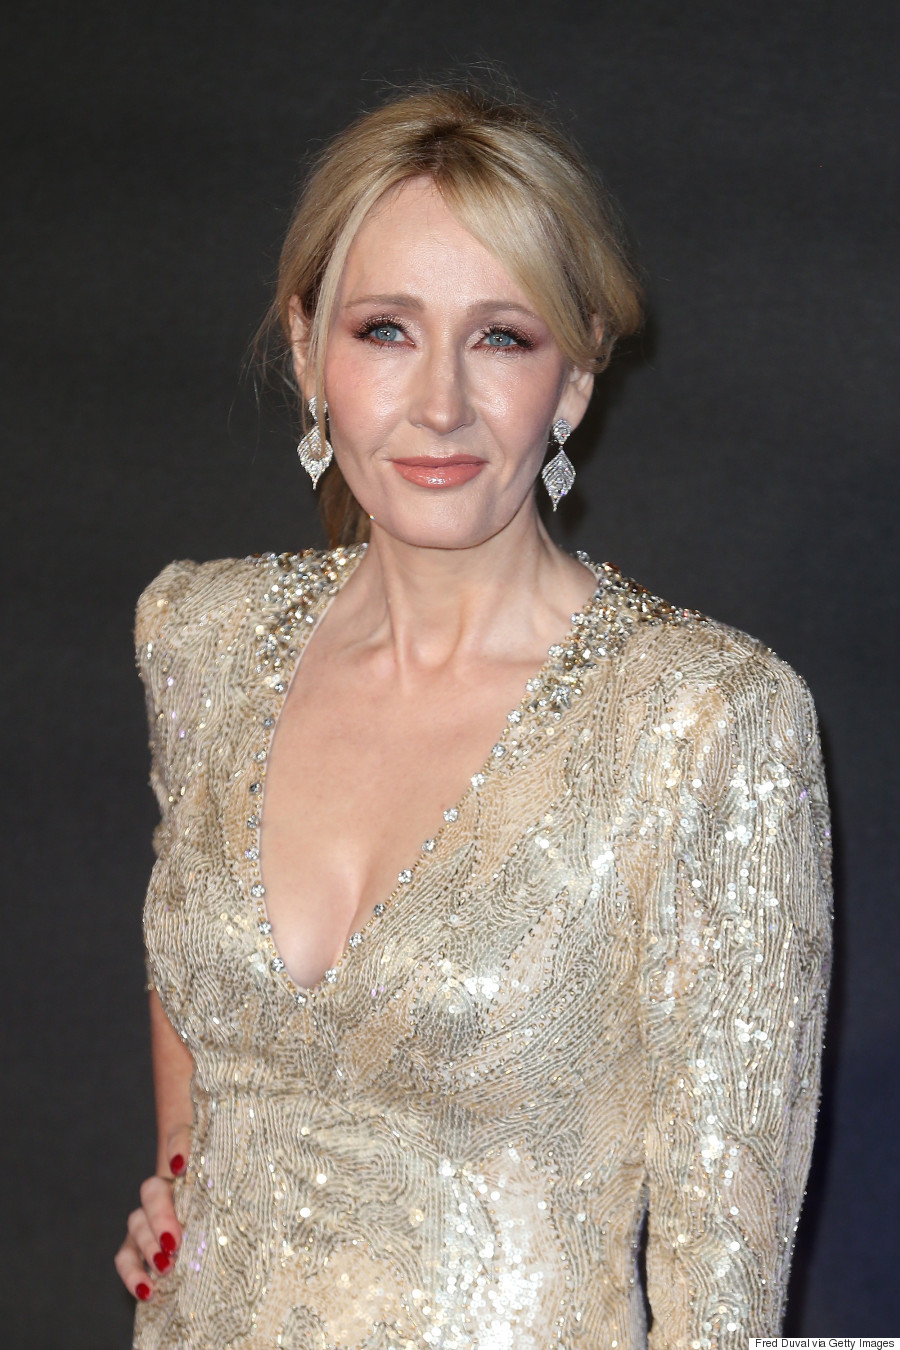 j k rowling destroys twitter trolls who burned her harry potter books jk rowling